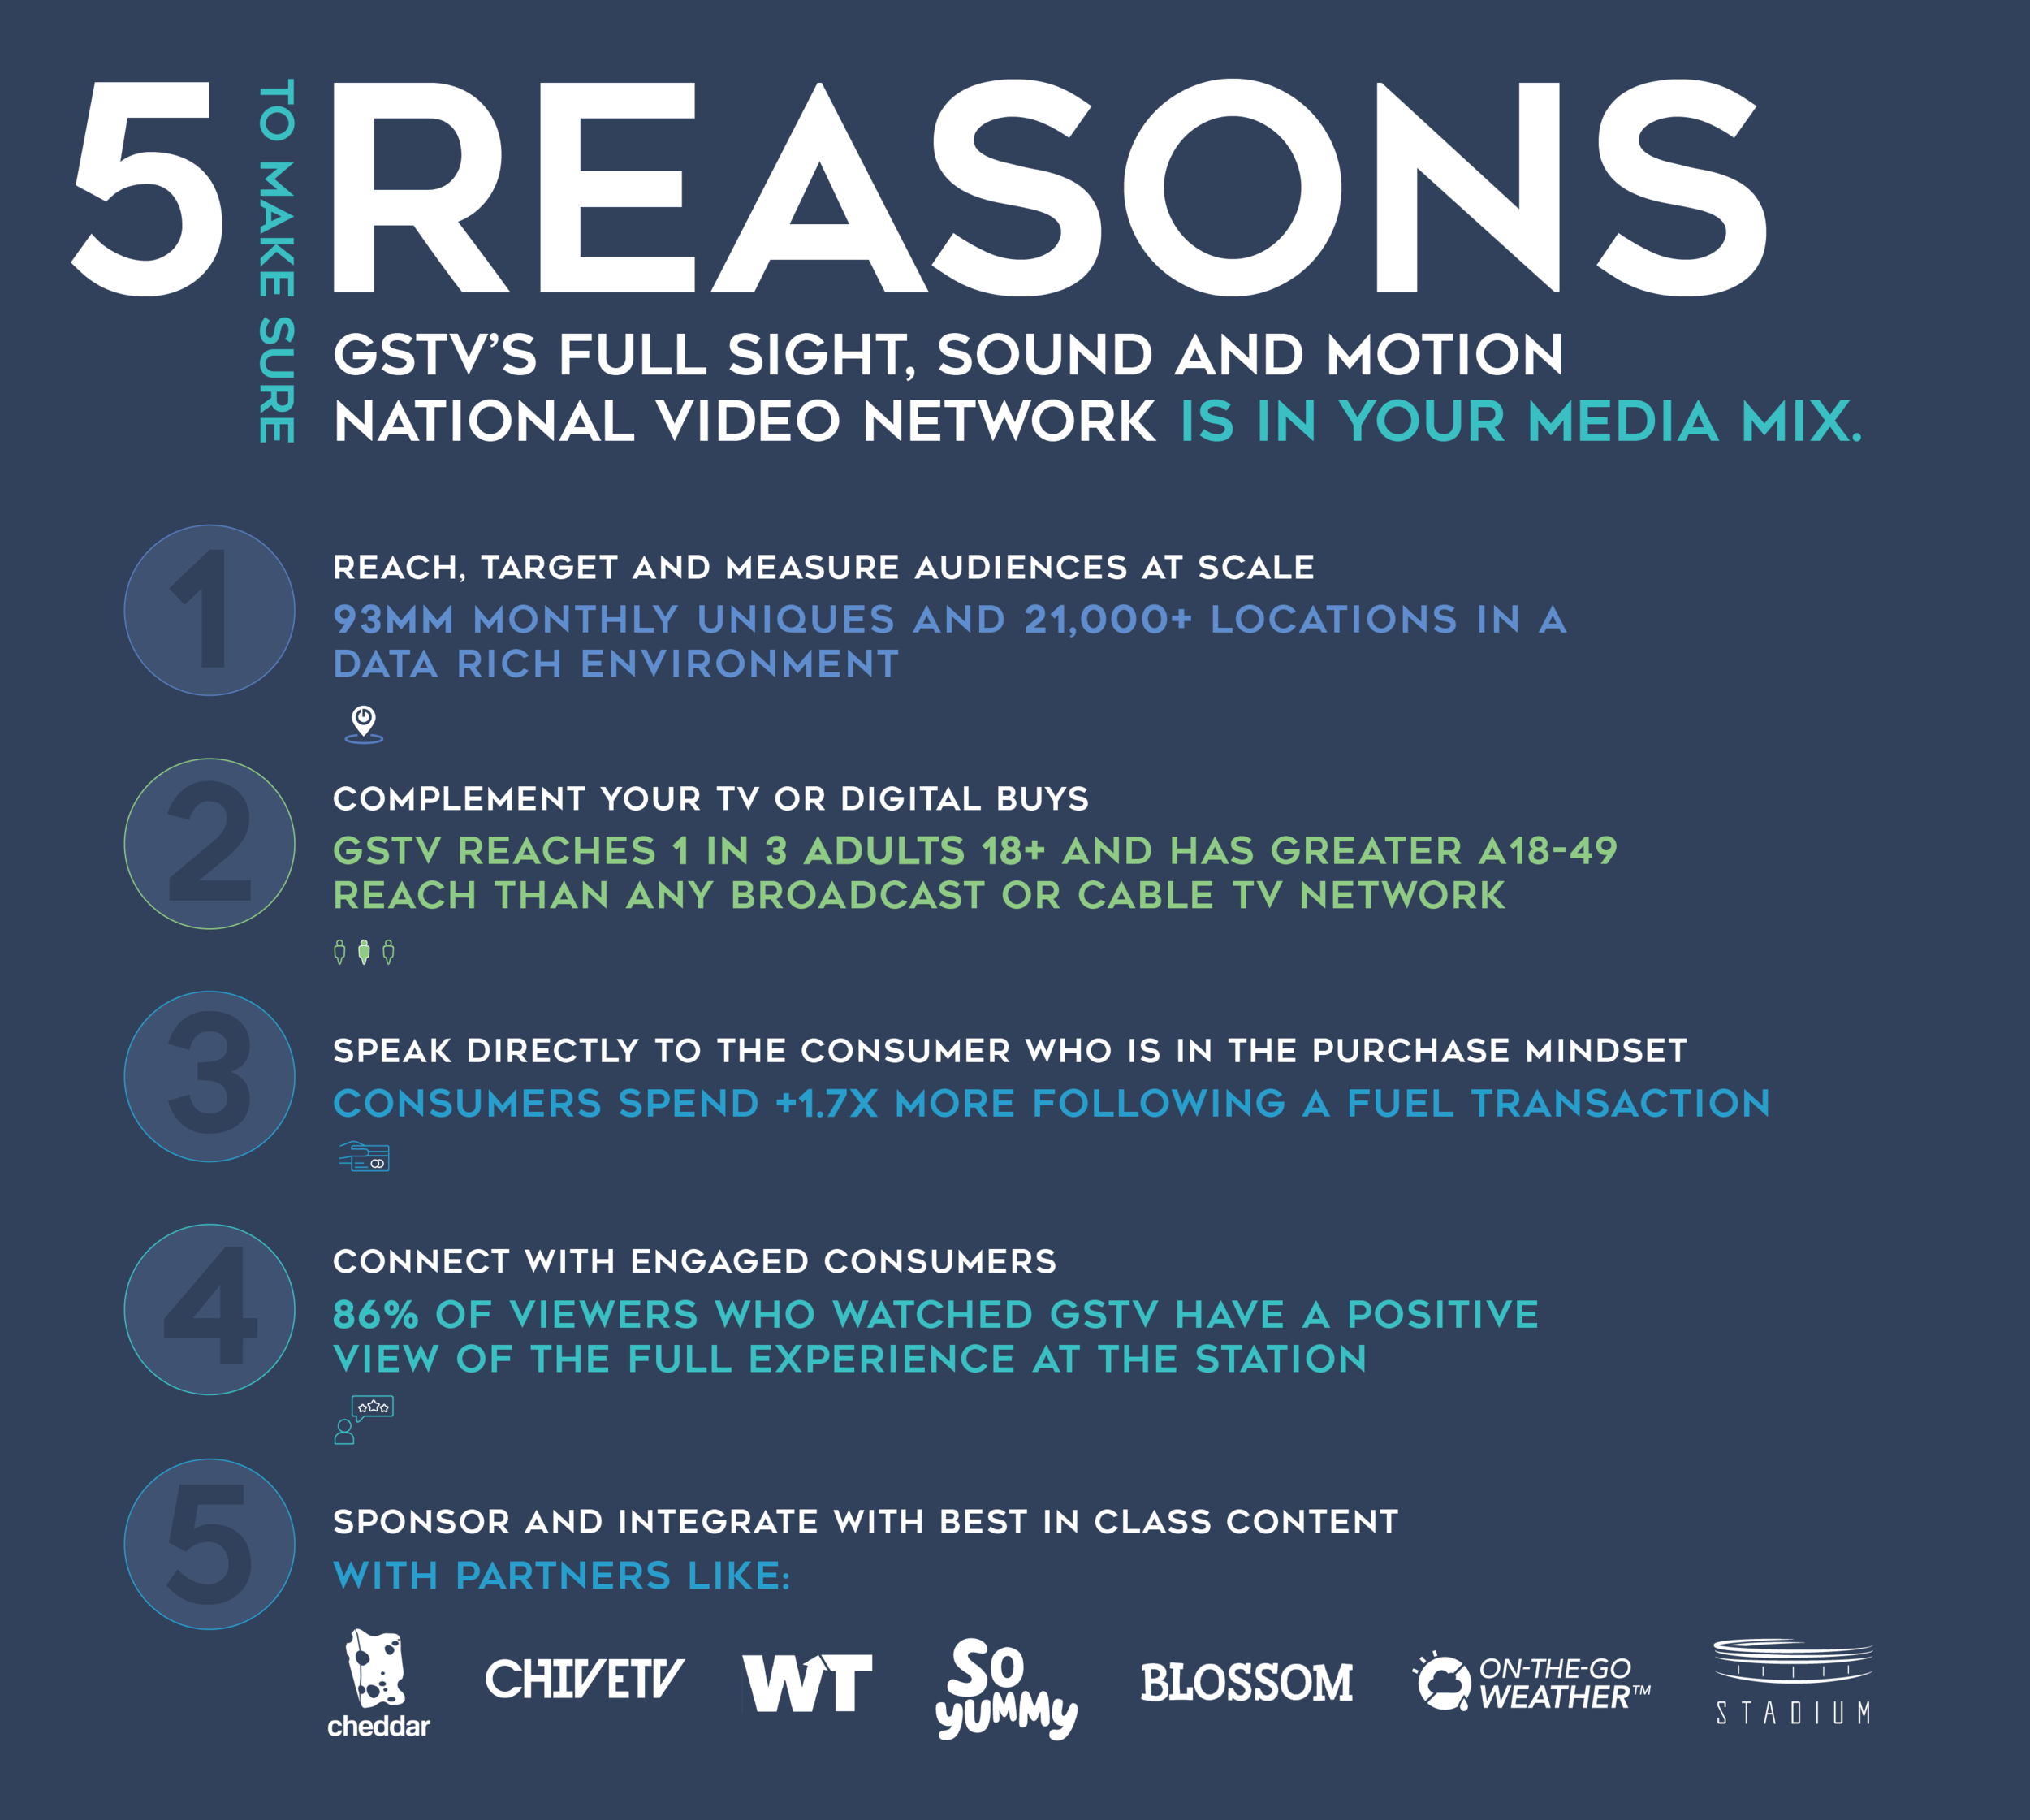 Five Reasons For GSTV